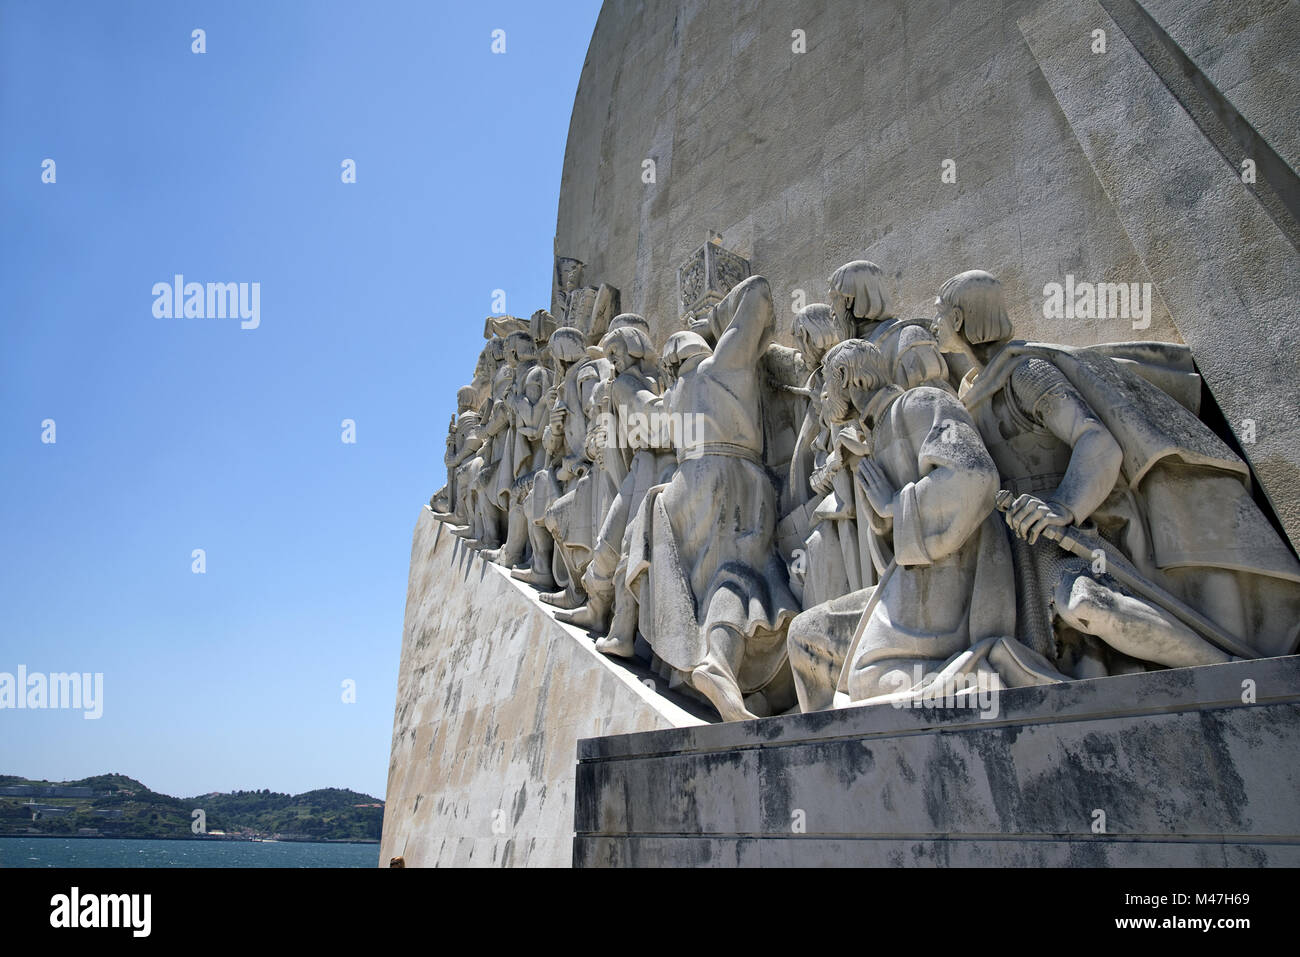 Monument to the discoveries, Lisbon, Portugal - Stock Image